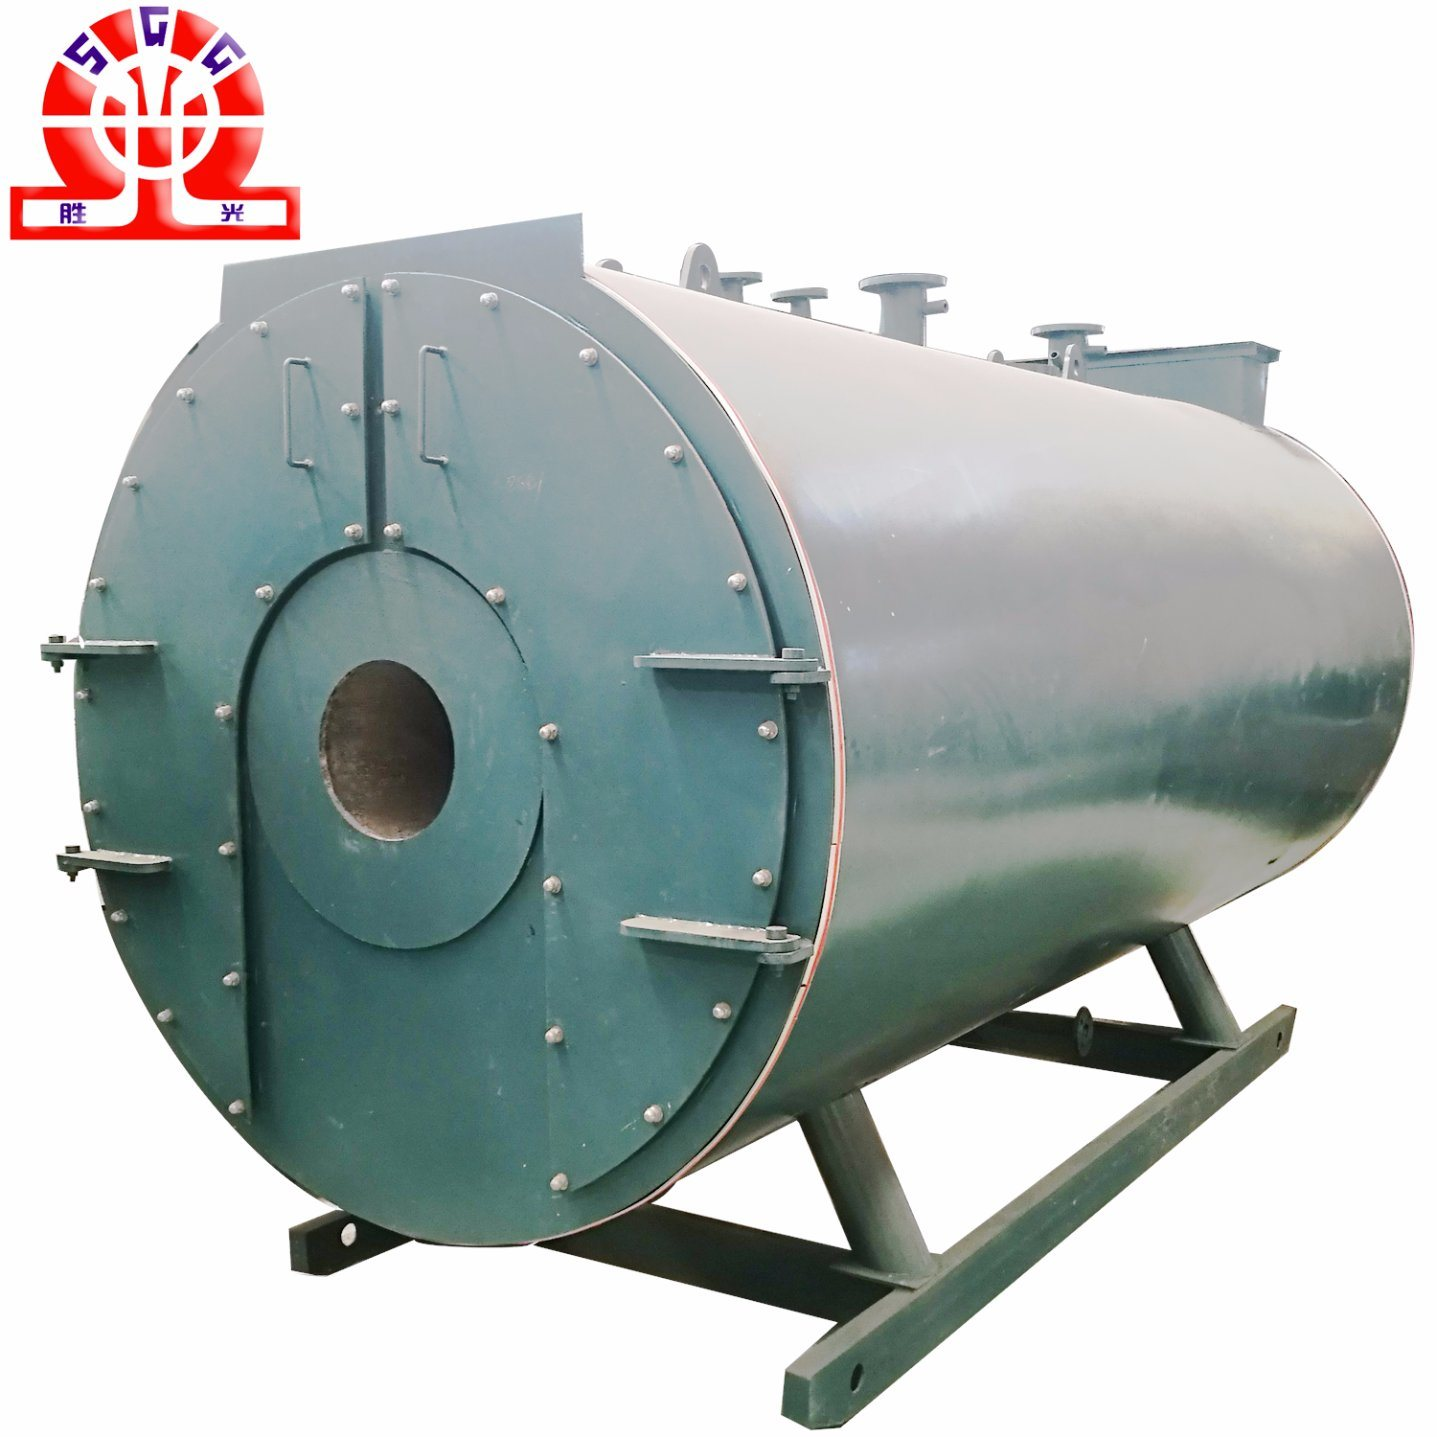 China Adequate Heating Gas Fired Steam Boiler for Chemical Factories ...